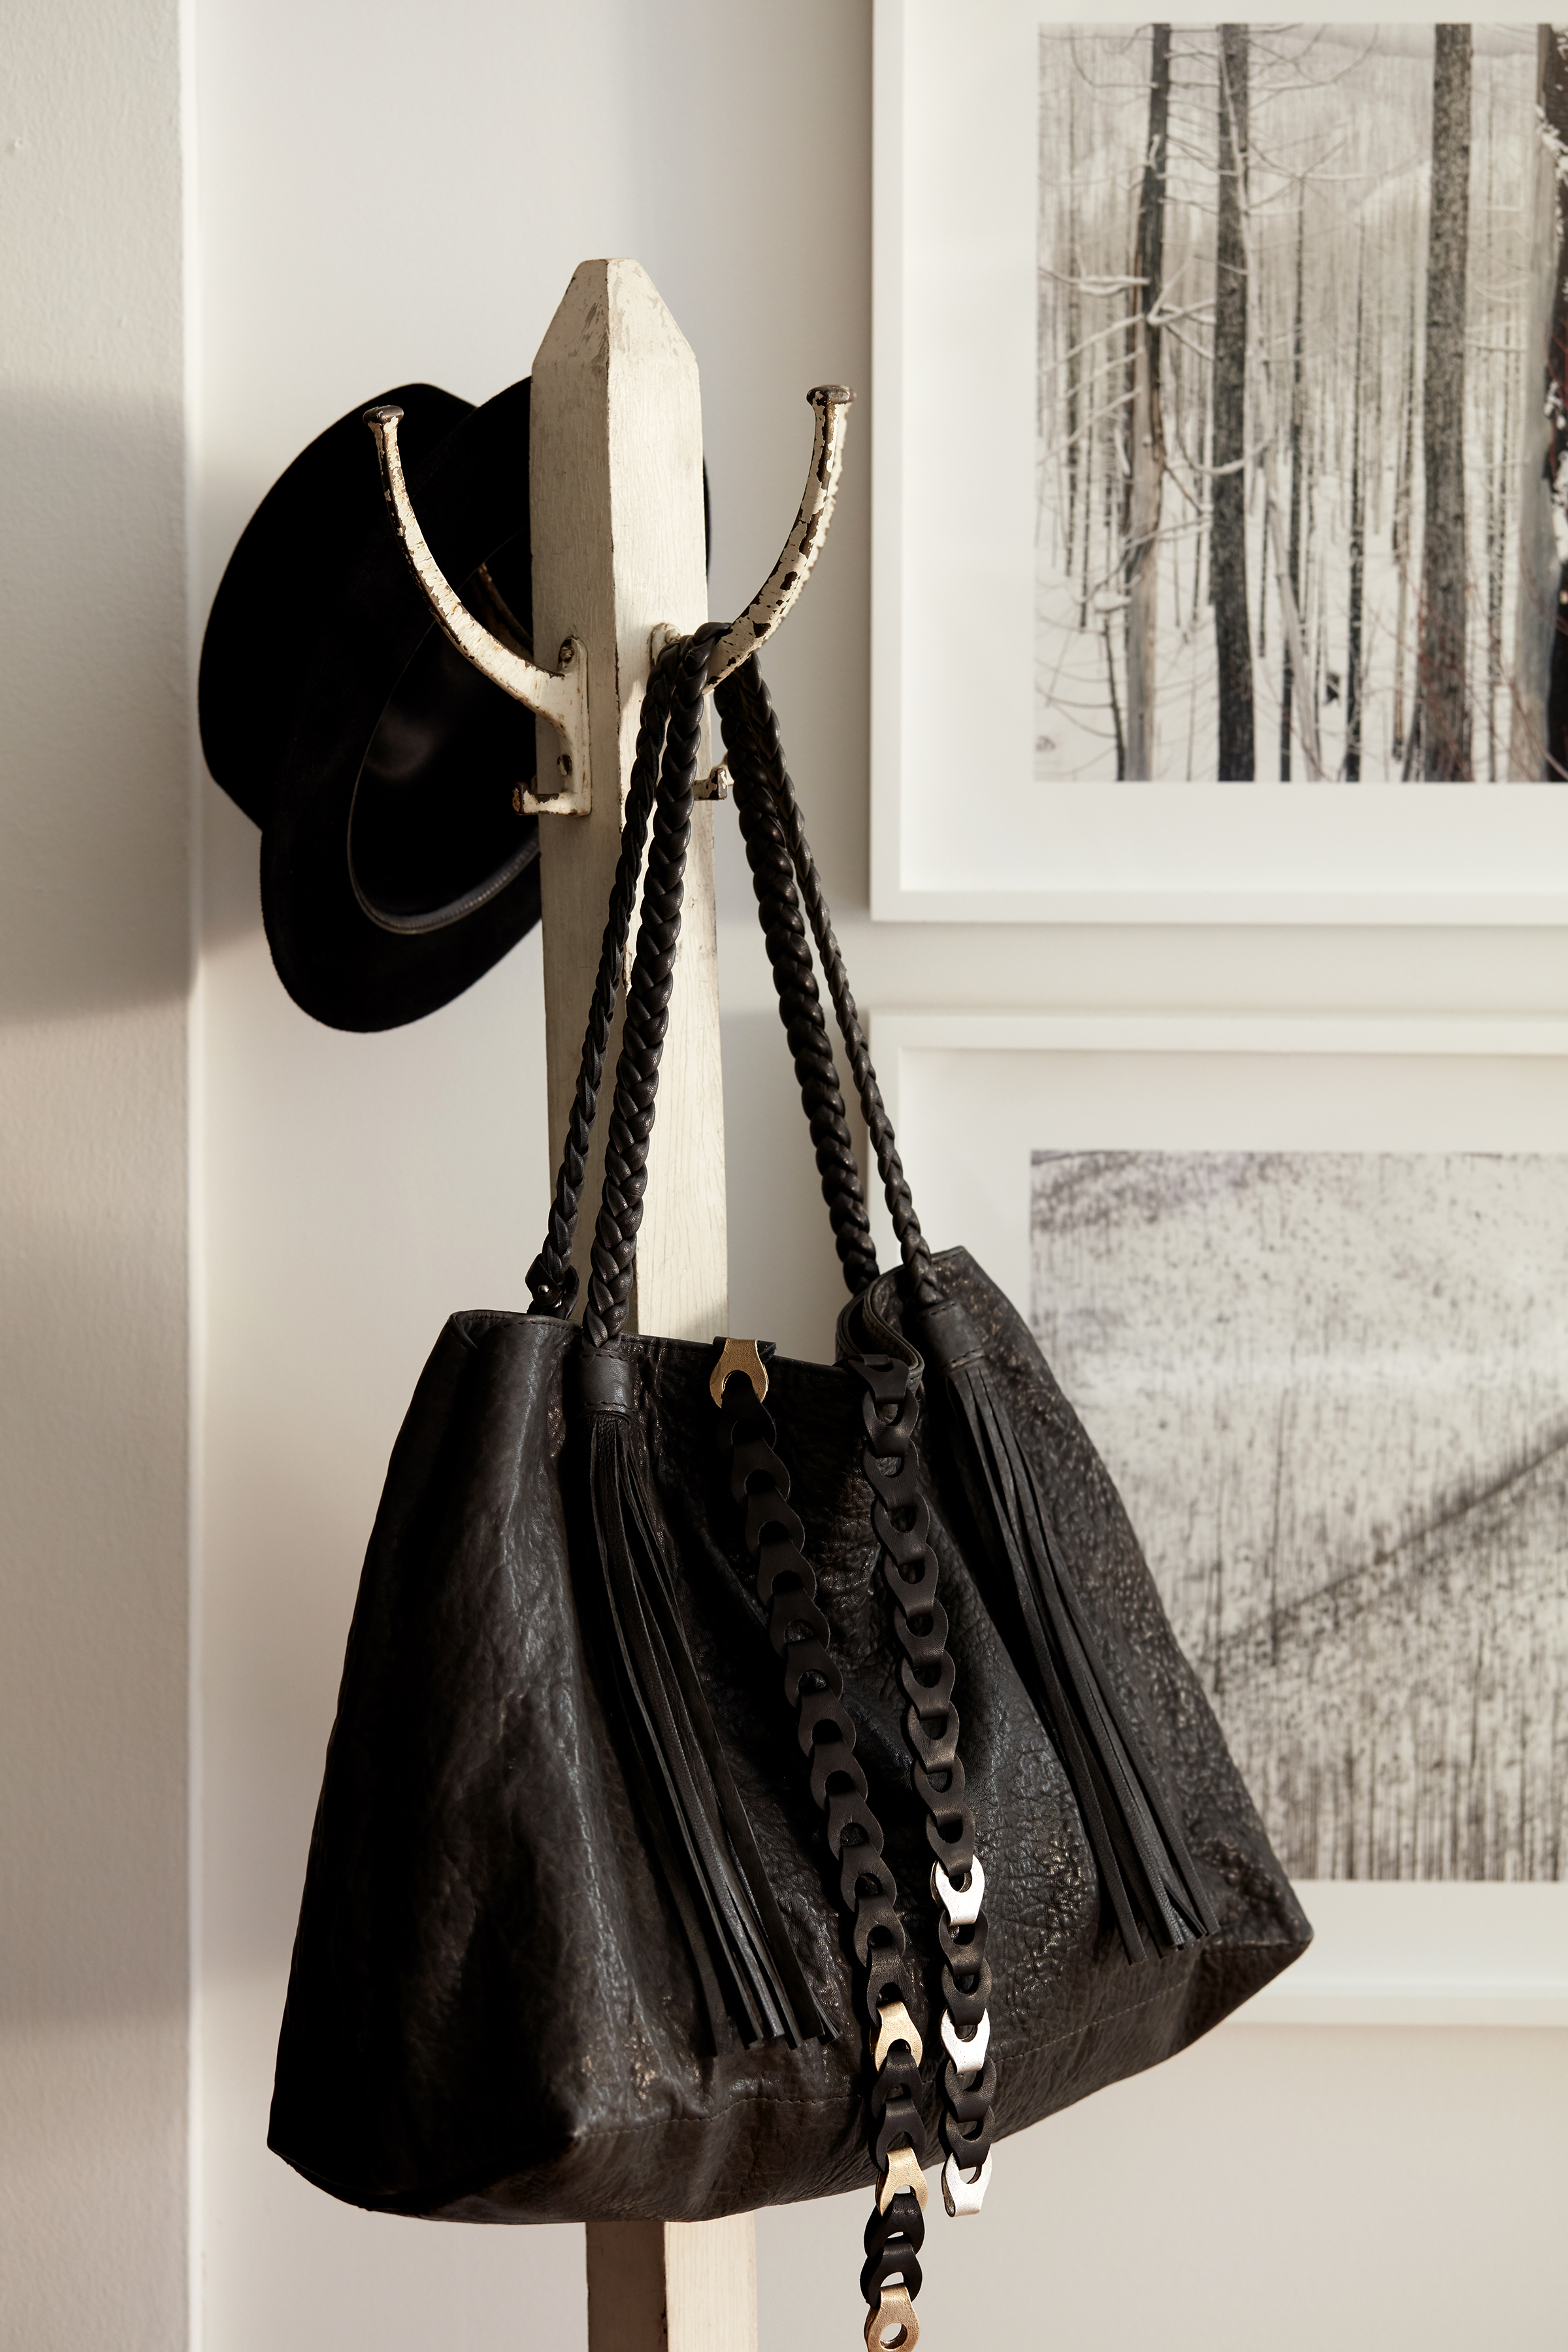 East End Tote  in Black Bubble Lamb, and  Chainmail Belt No. 1  in Black and Brass | Photo: Josephine Rozman